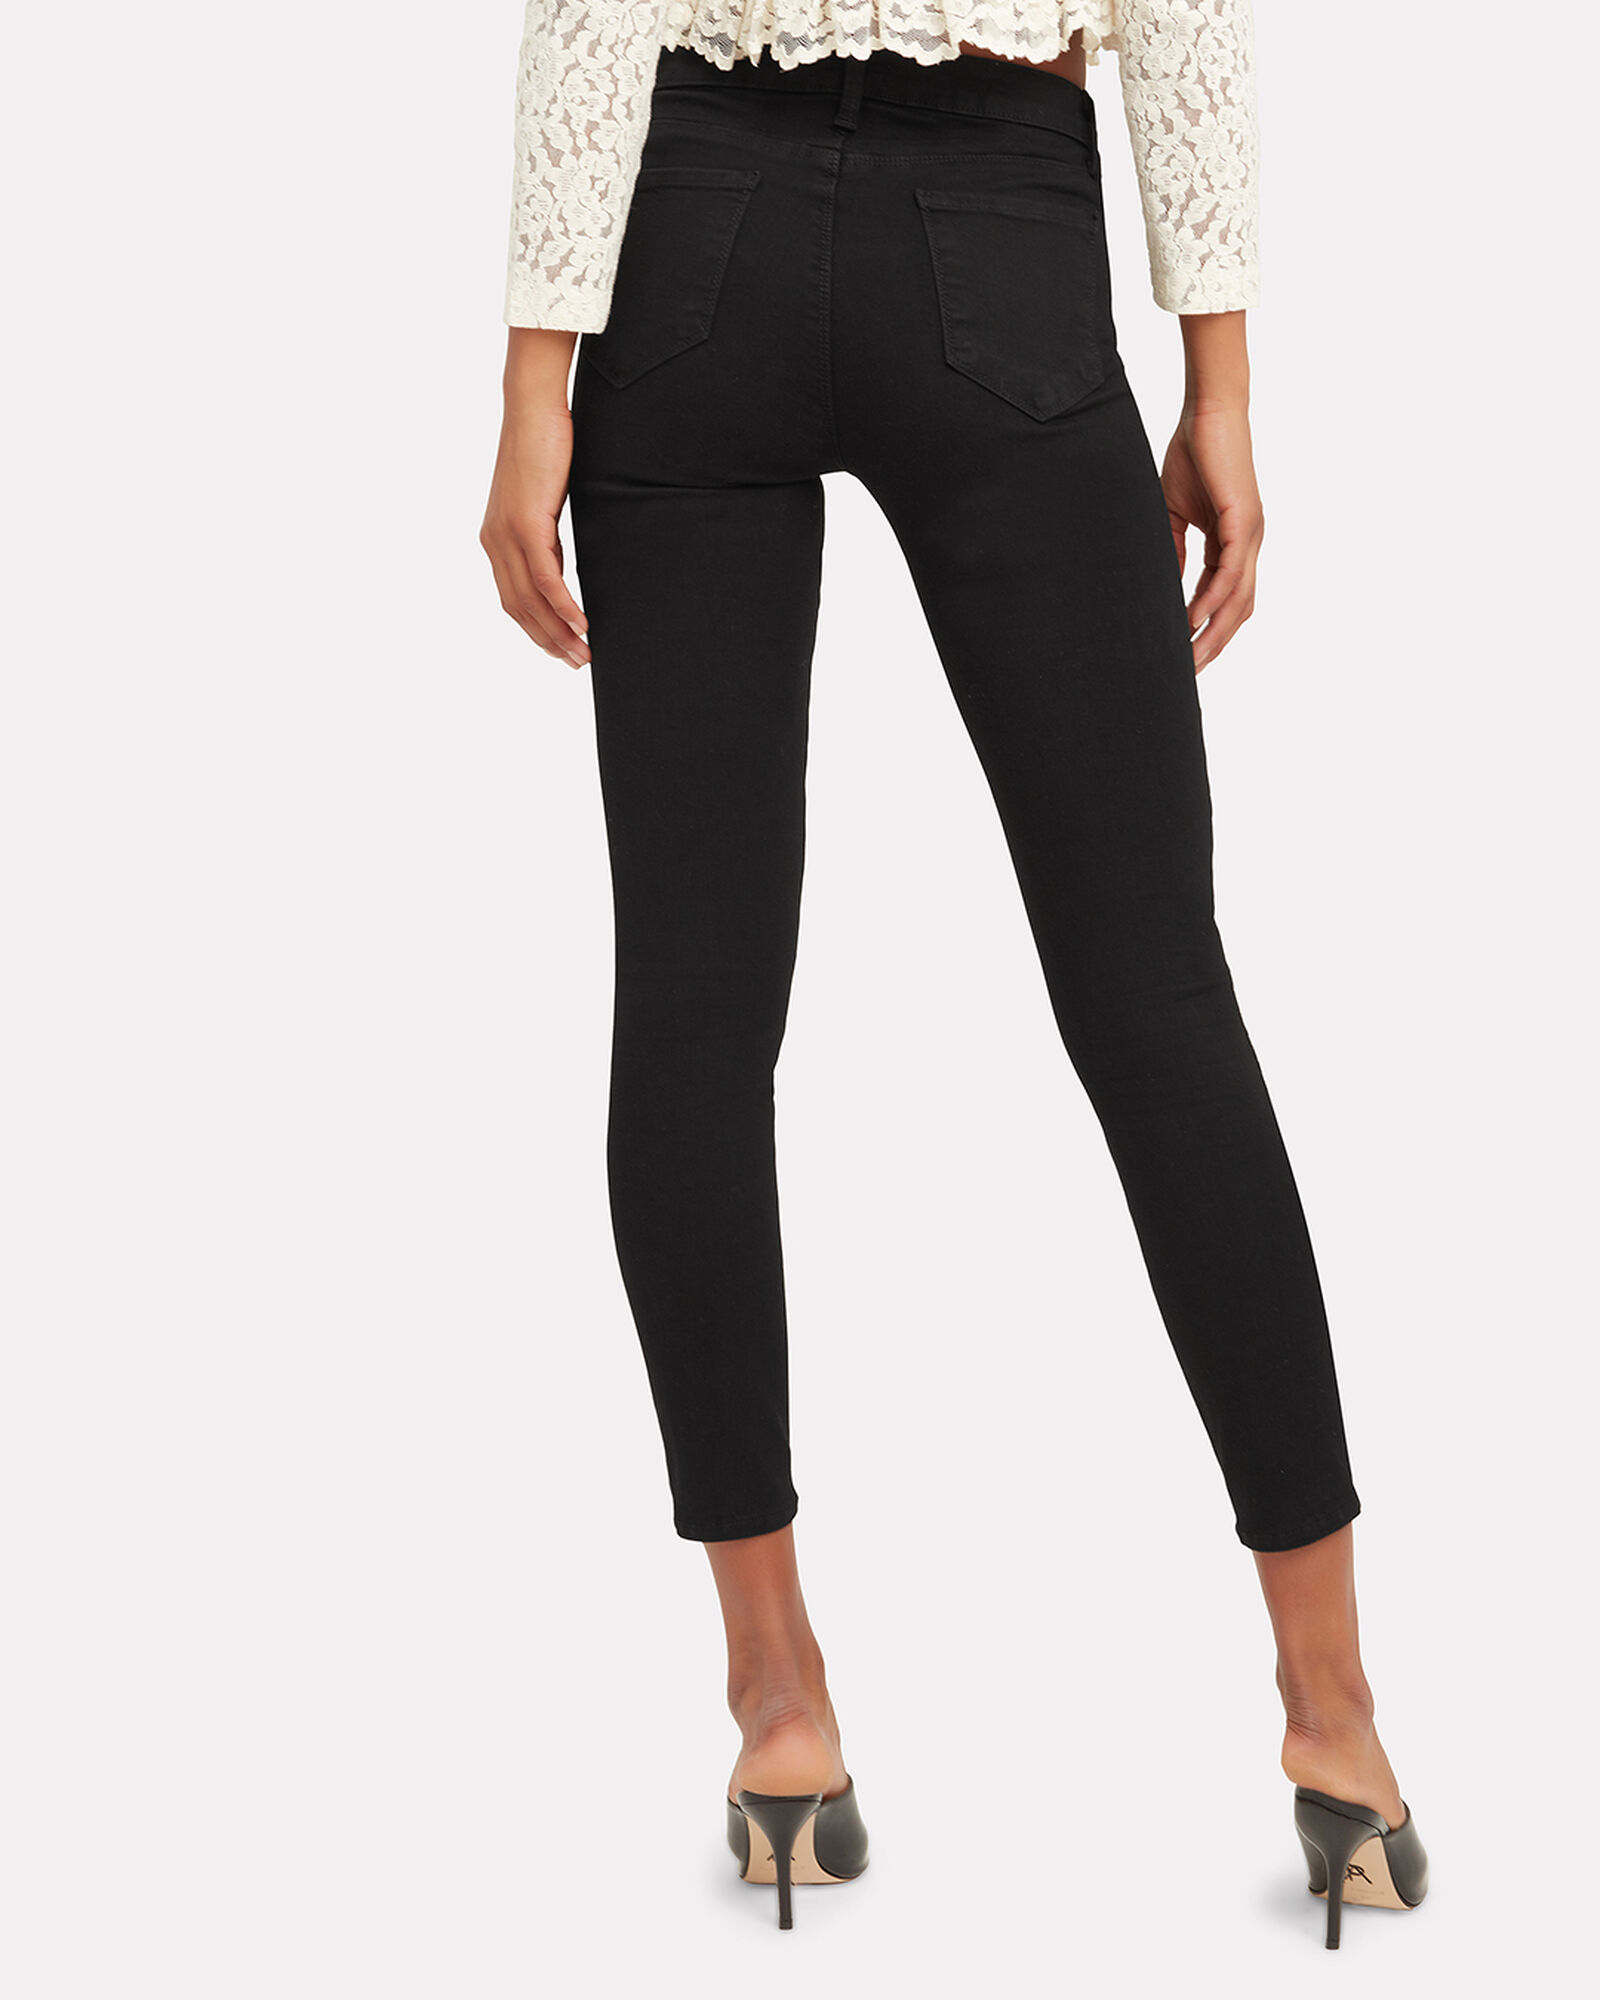 Margot High-Rise Skinny Jeans, BLACK, hi-res